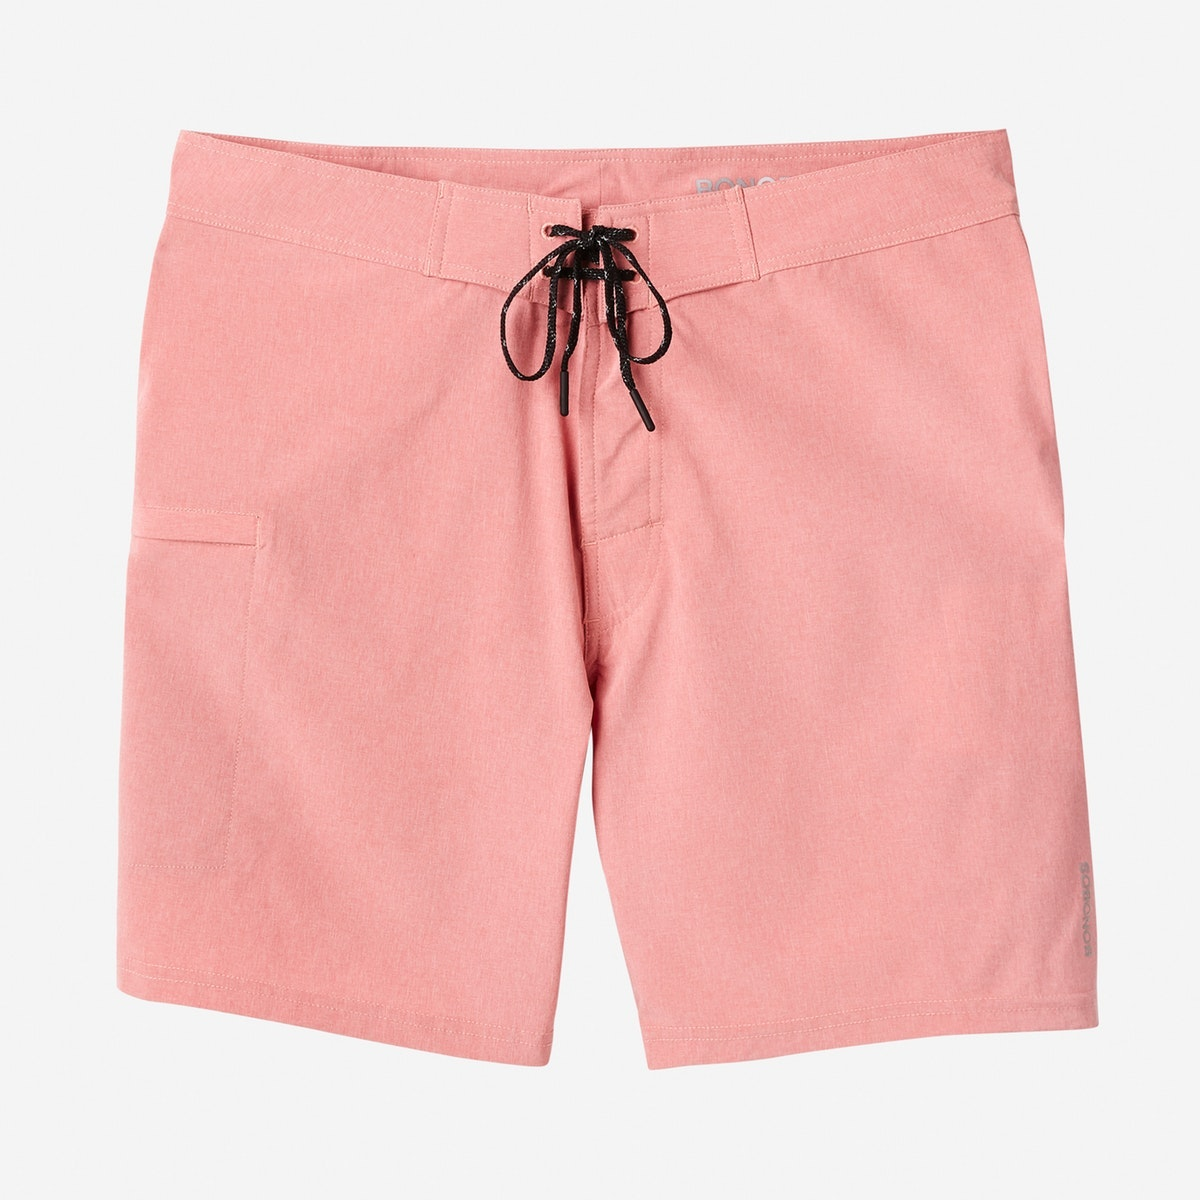 The Surf Short